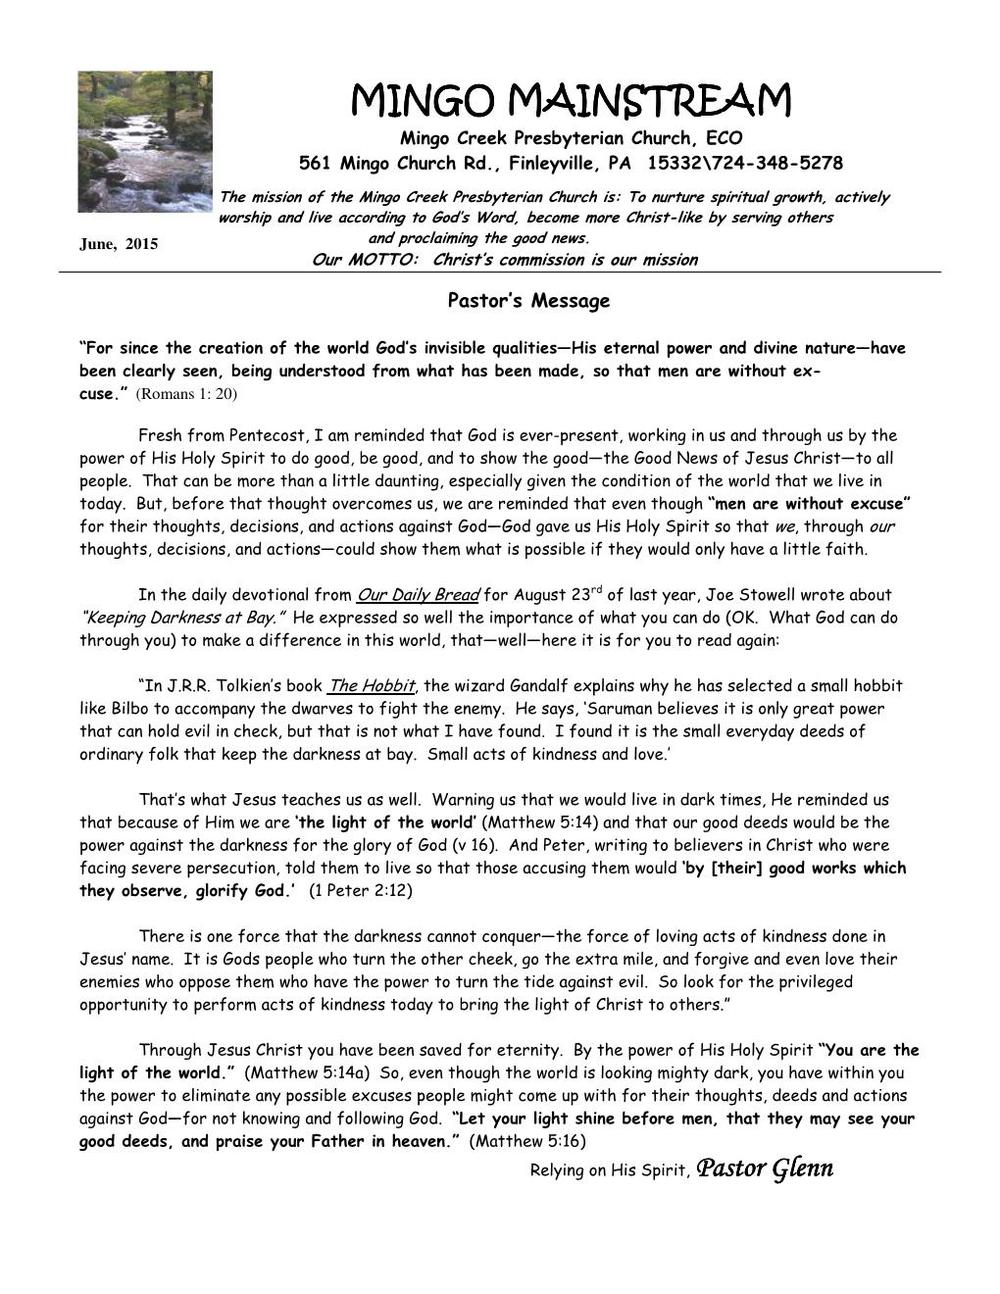 JUNE NEWSLETTER Page 001.jpg